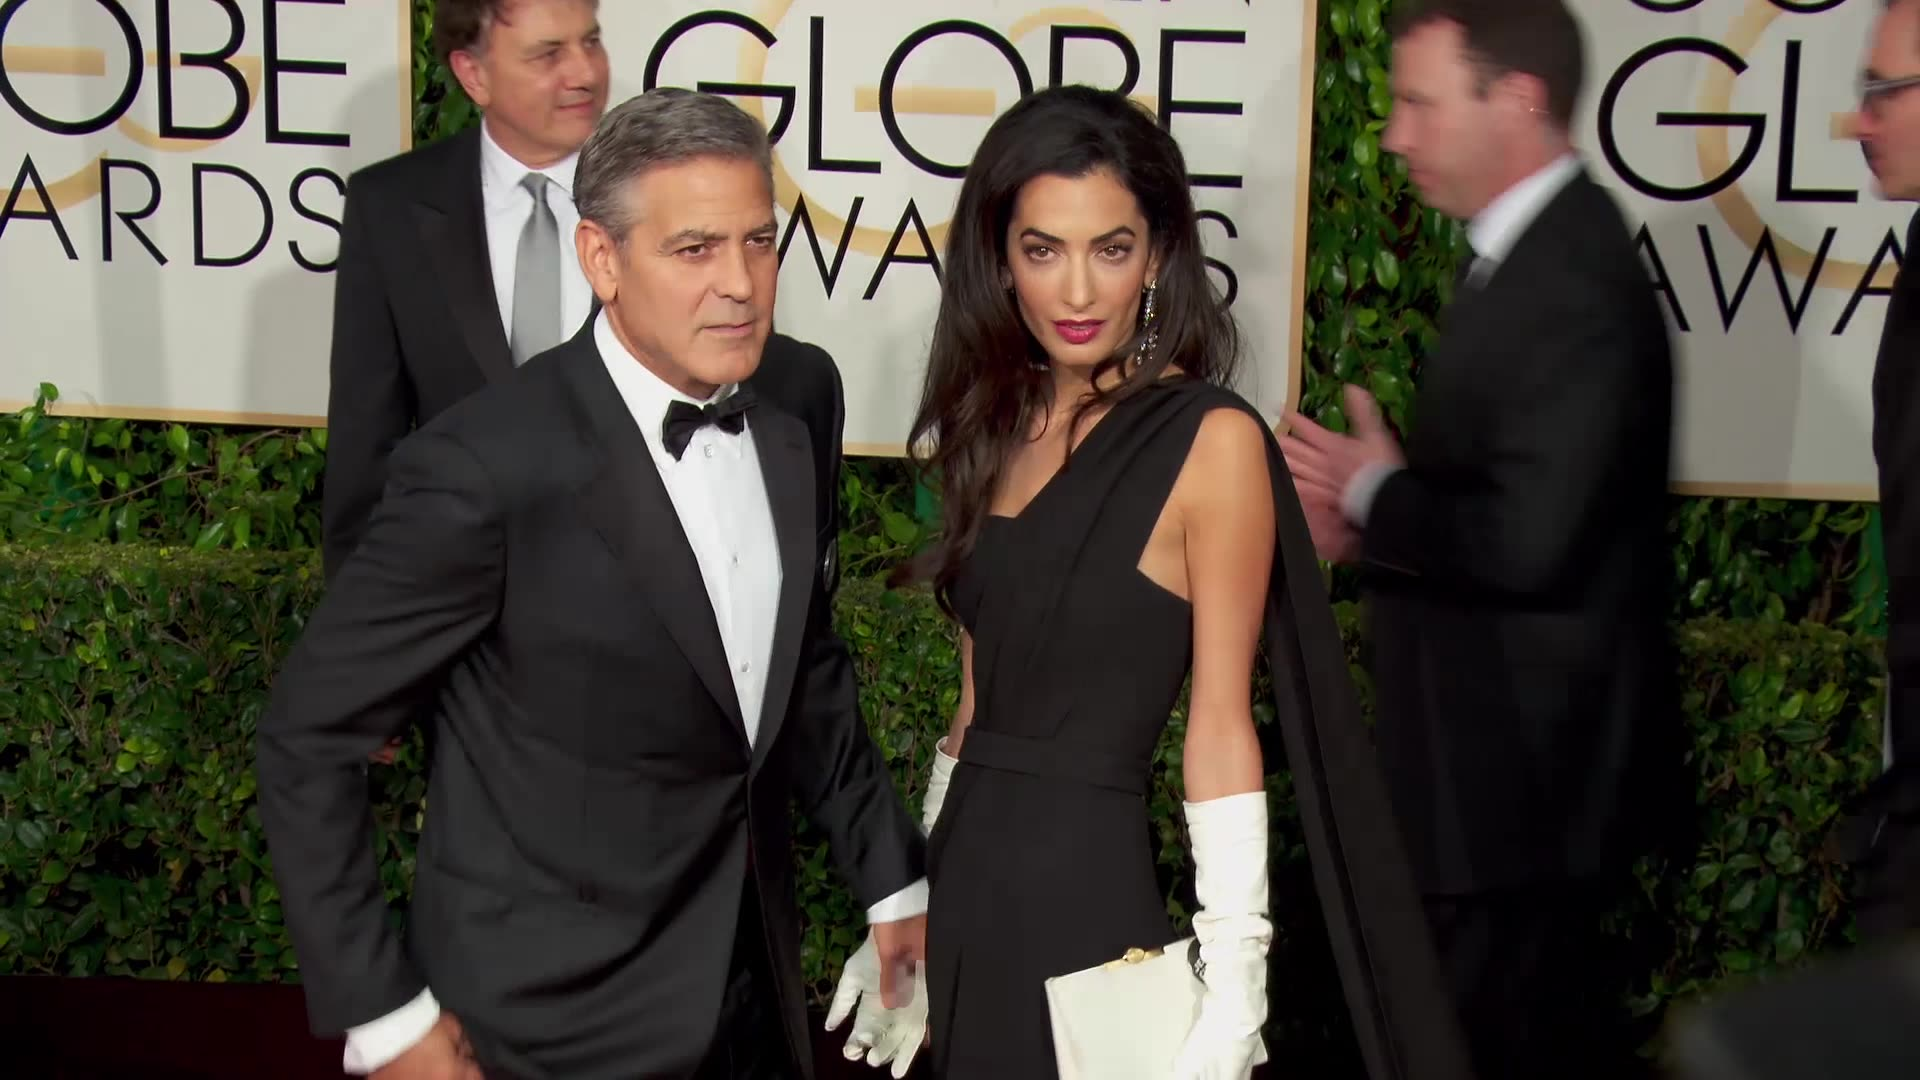 George Clooney Says Amal Took 25 Minutes to Say 'Yes' When He Proposed